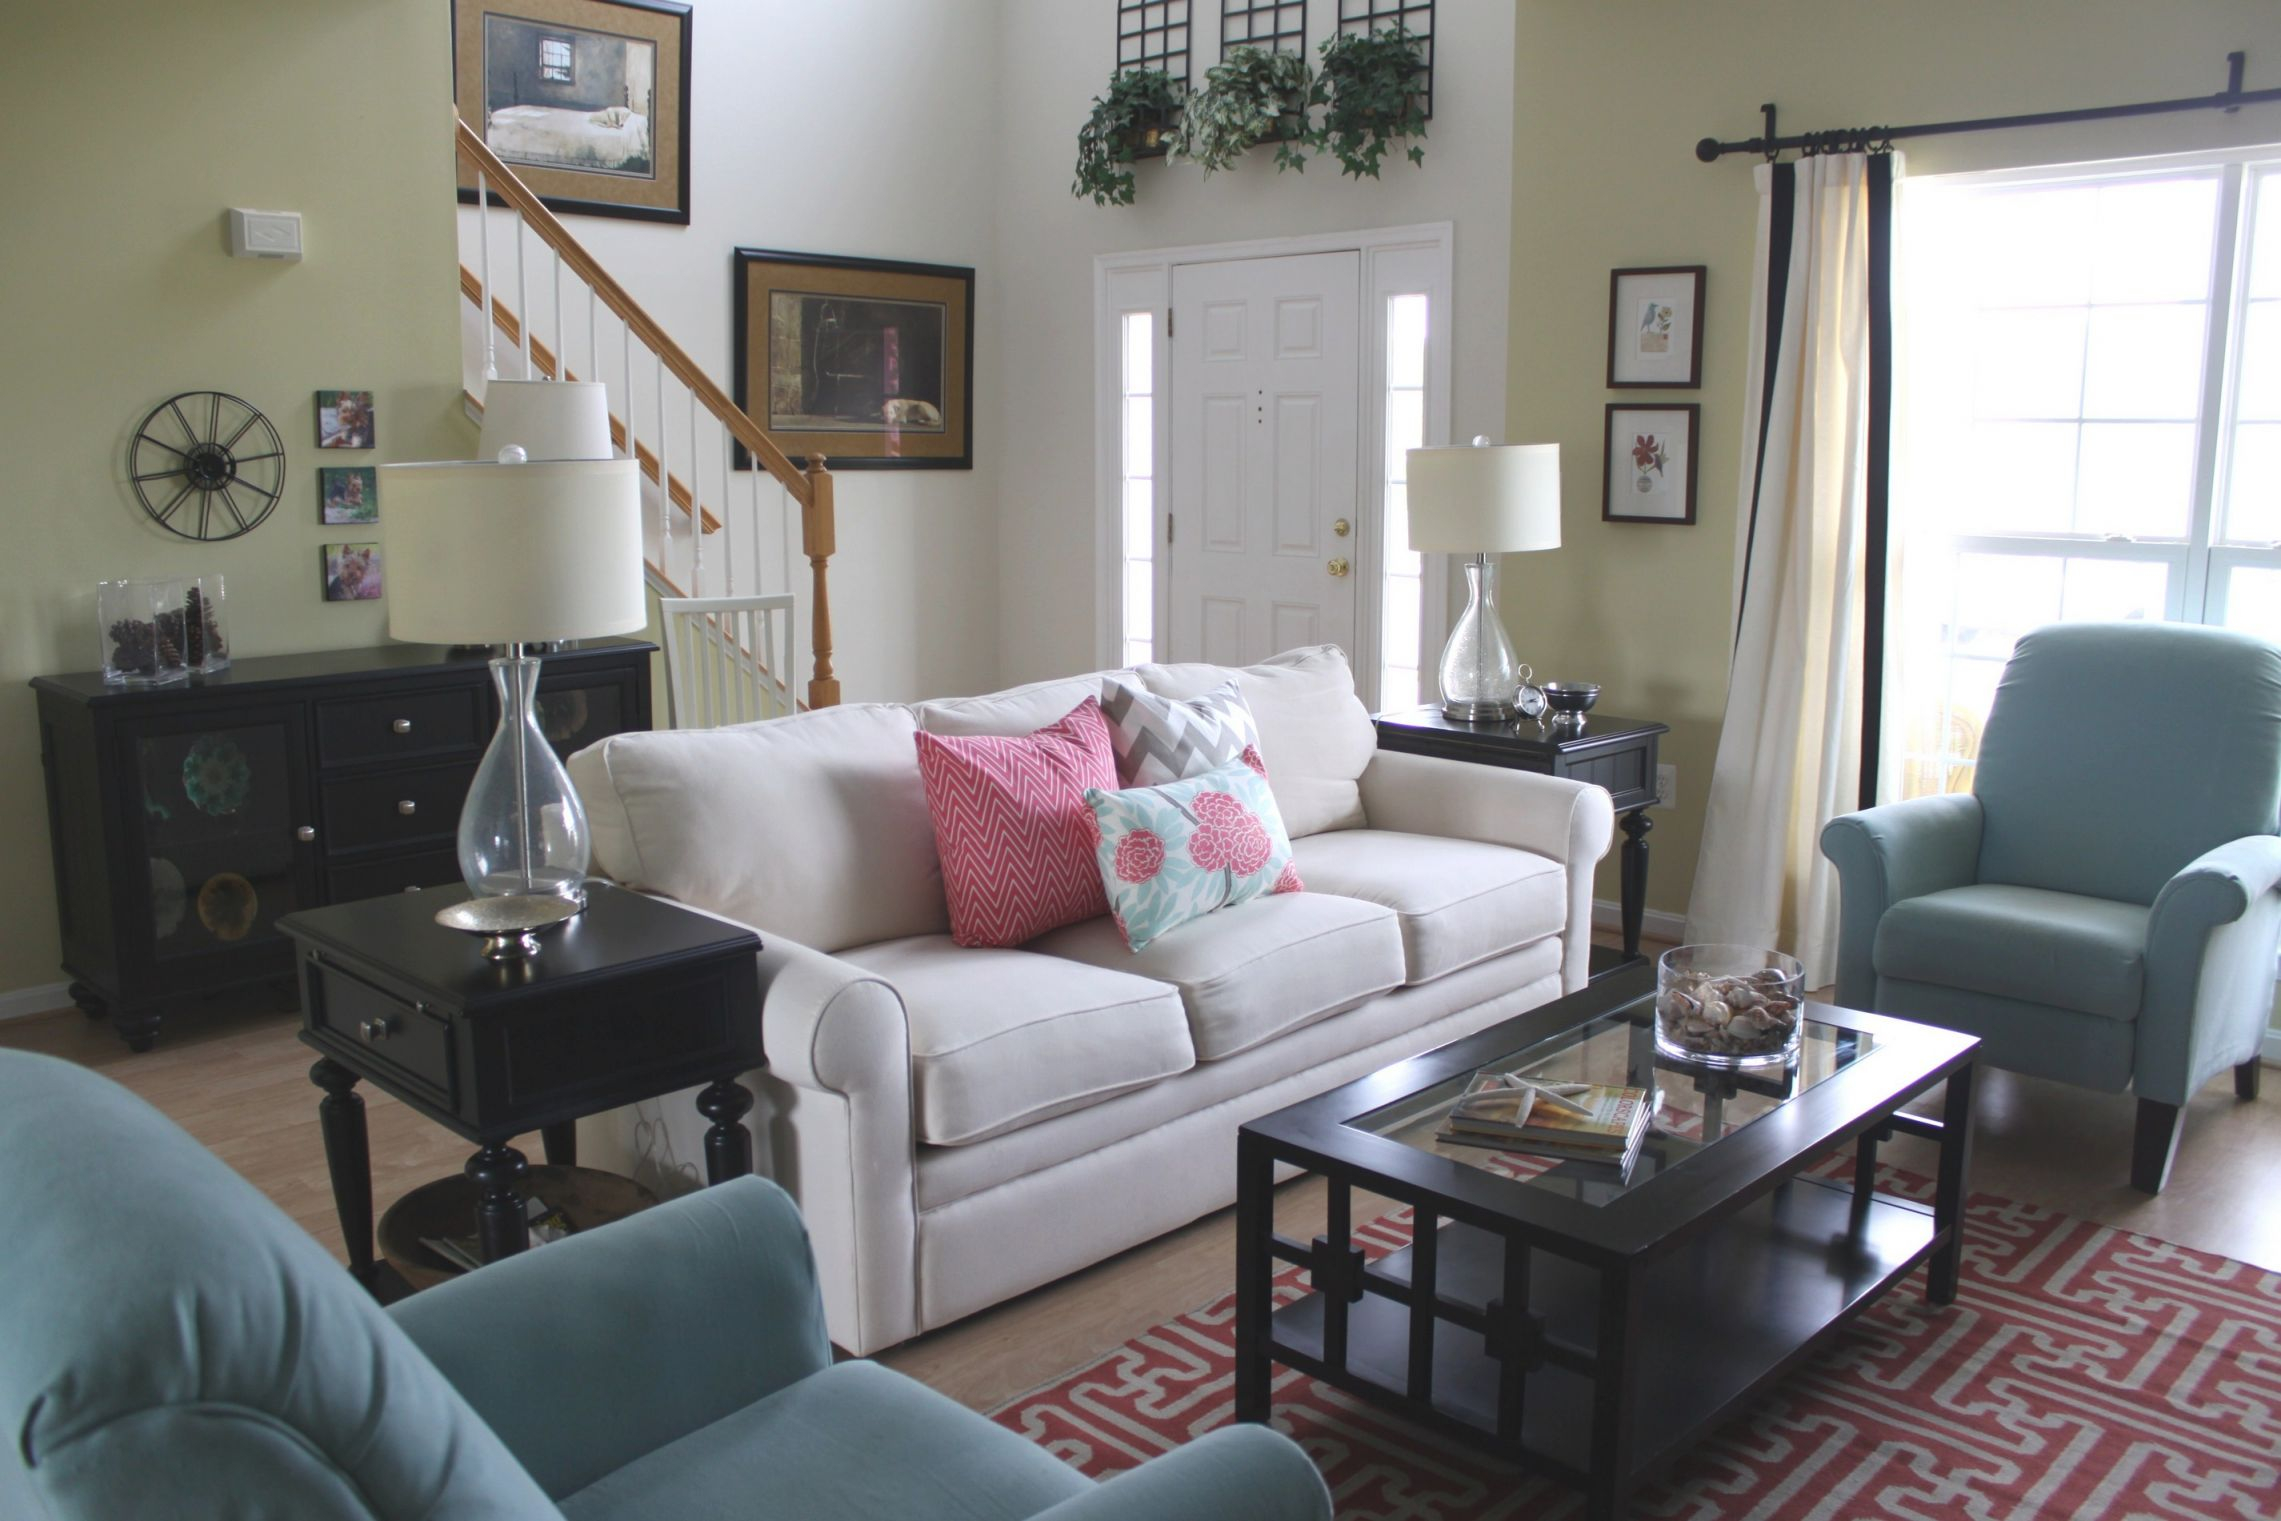 Home And Interior Design Decorating Your Livingroom with regard to 13+ Unique Ideas For Decorating A Small Living Room On A Budget